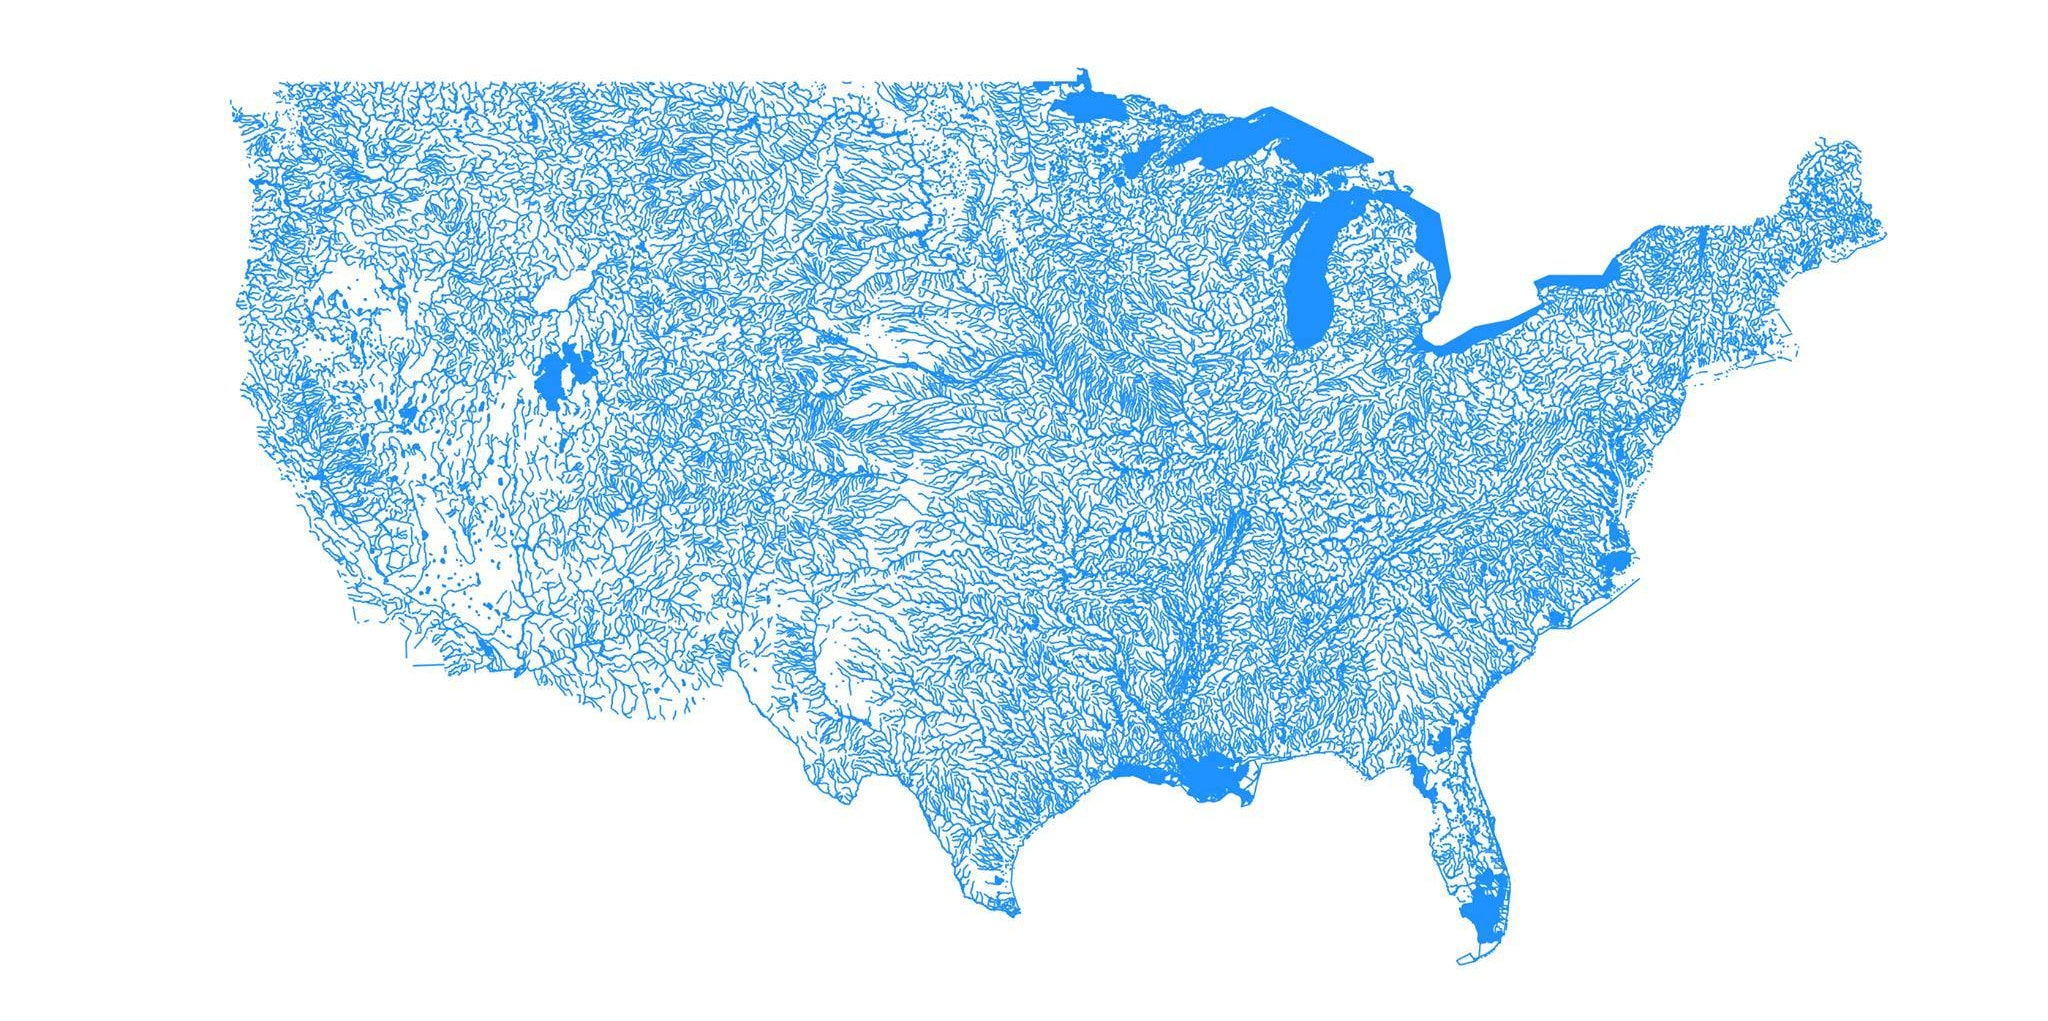 Simple script that uses GIS data from the USGS to plot water bodies